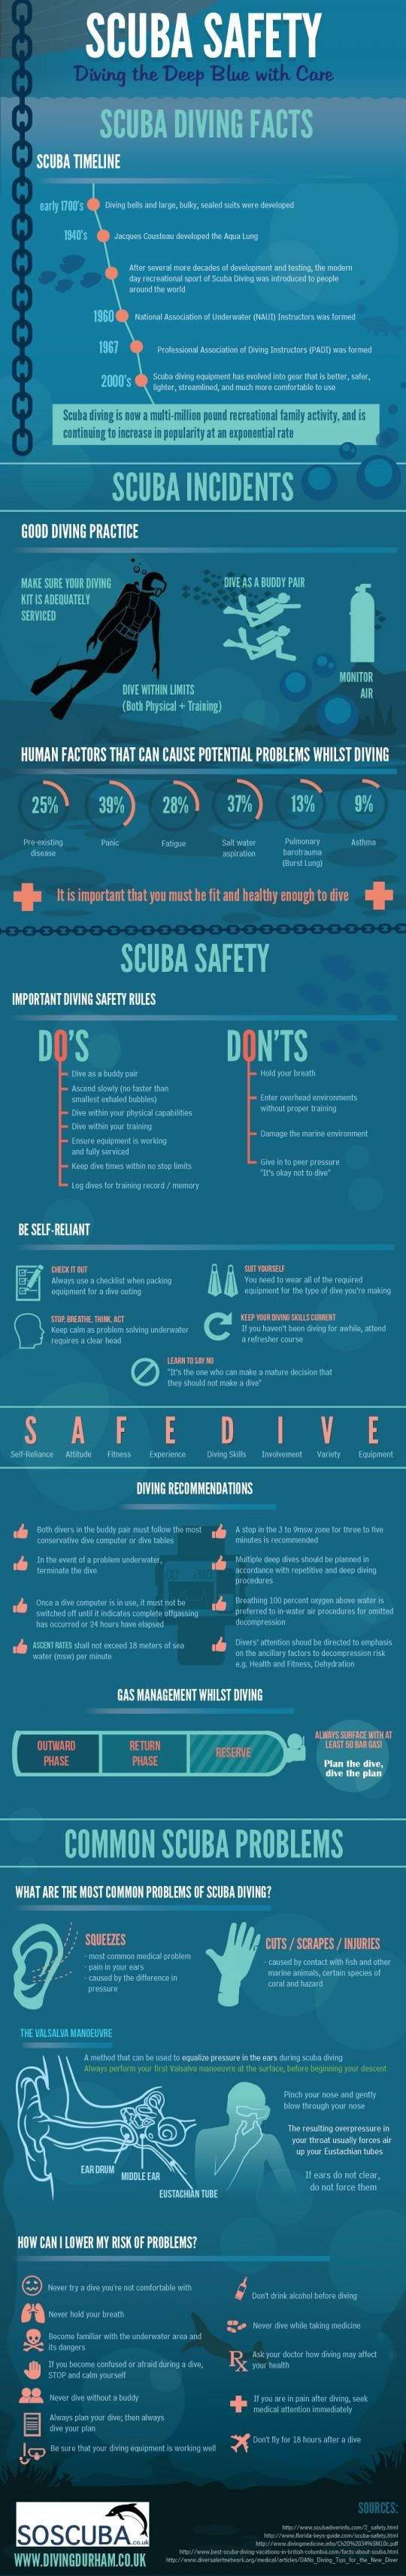 Safe Diving in Bali With OK Divers